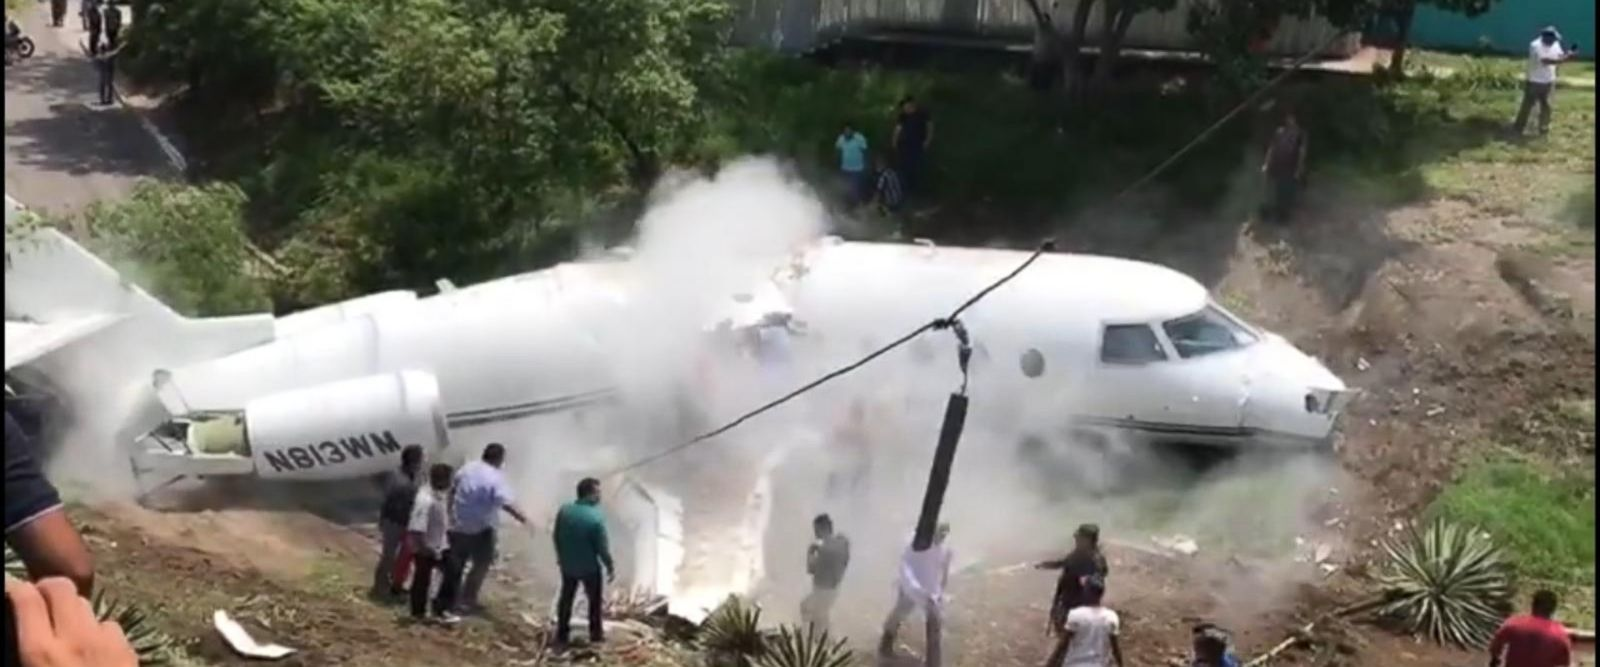 VIDEO: Americans' private plane breaks in half in Honduras